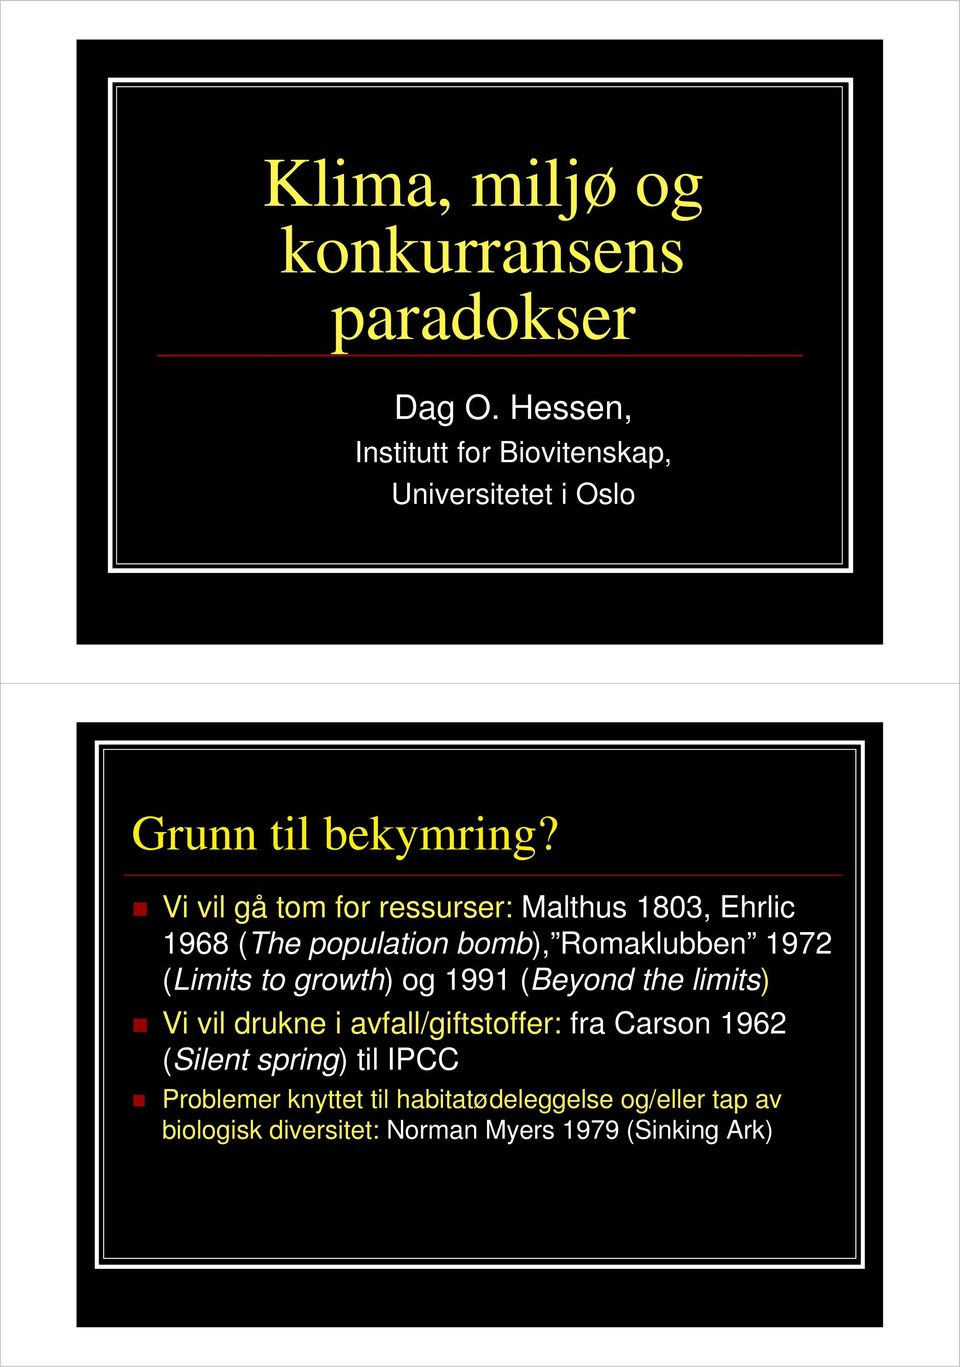 Vi vil gå tom for ressurser: Malthus 1803, Ehrlic 1968 (The population bomb), Romaklubben 1972 (Limits to growth)